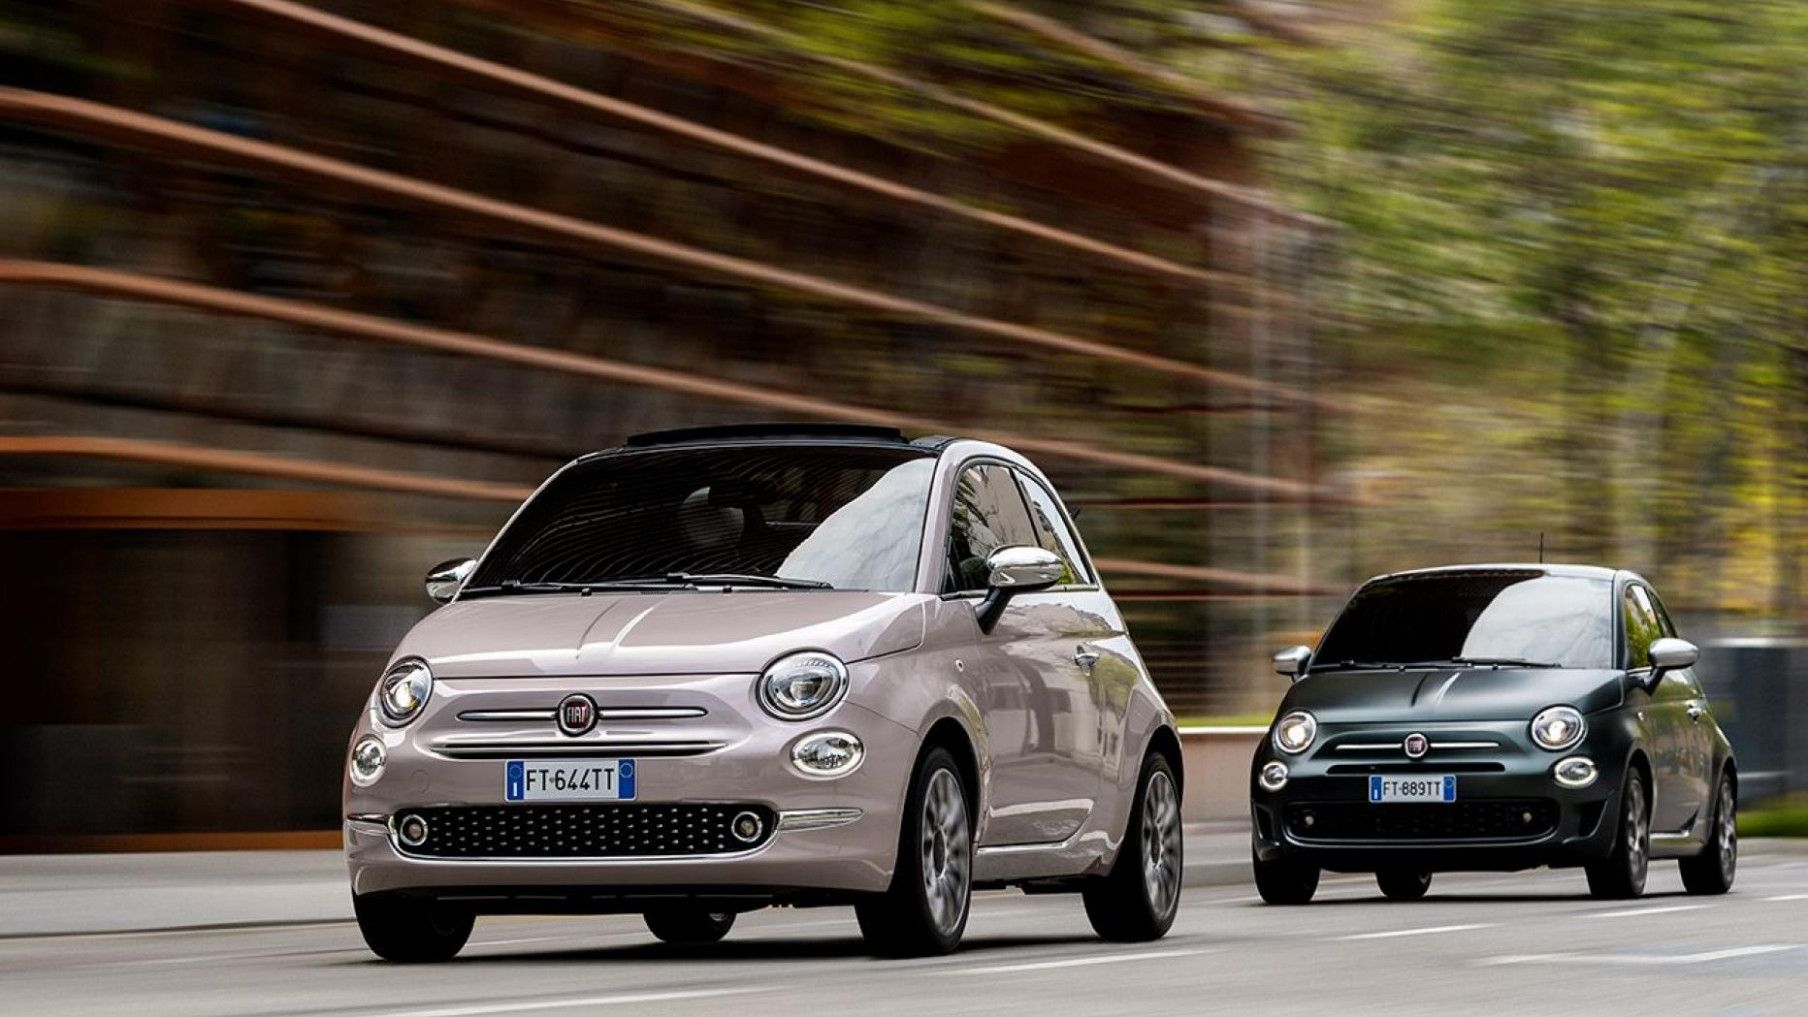 2020 Fiat 500 Abarth Redesign And Review in 2020 Fiat